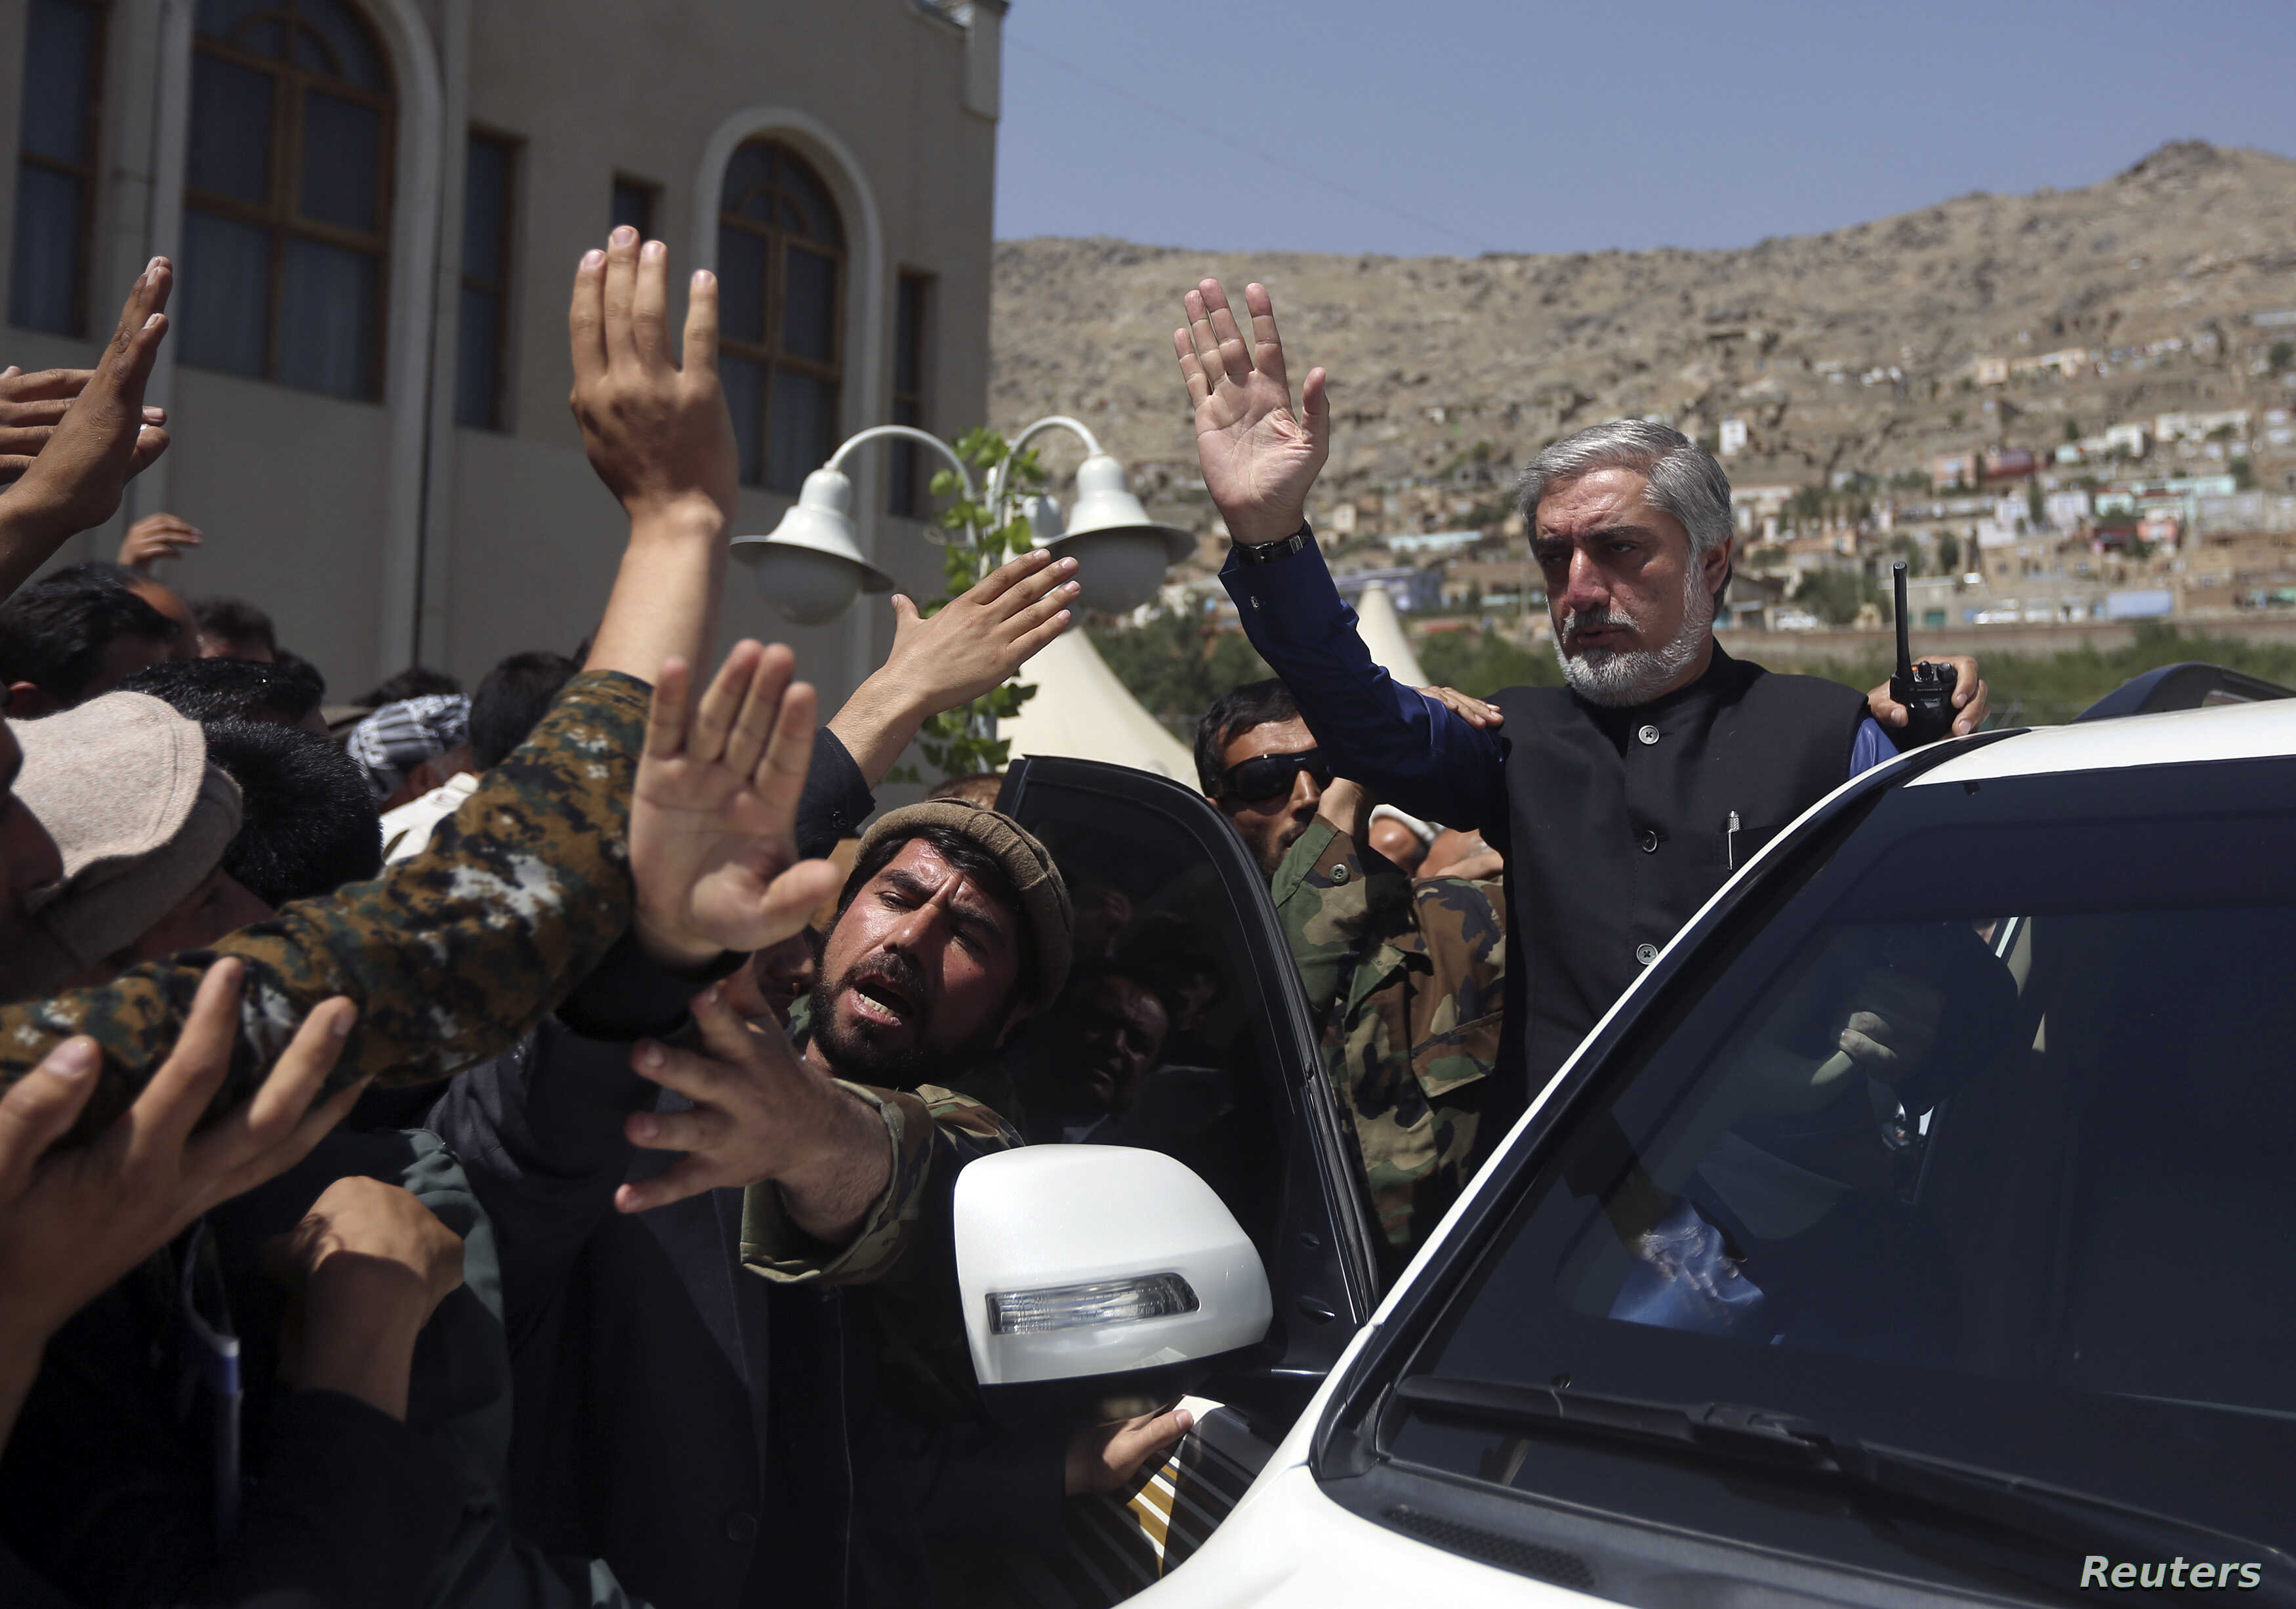 Afghan presidential candidate Abdullah Abdullah (R) waves after a ceremony commemorating the 2001 assassination of legendary Tajik resistance commander Ahmad Shah Massoud, in Kabul, Afghanistan, Sept. 9, 2014.